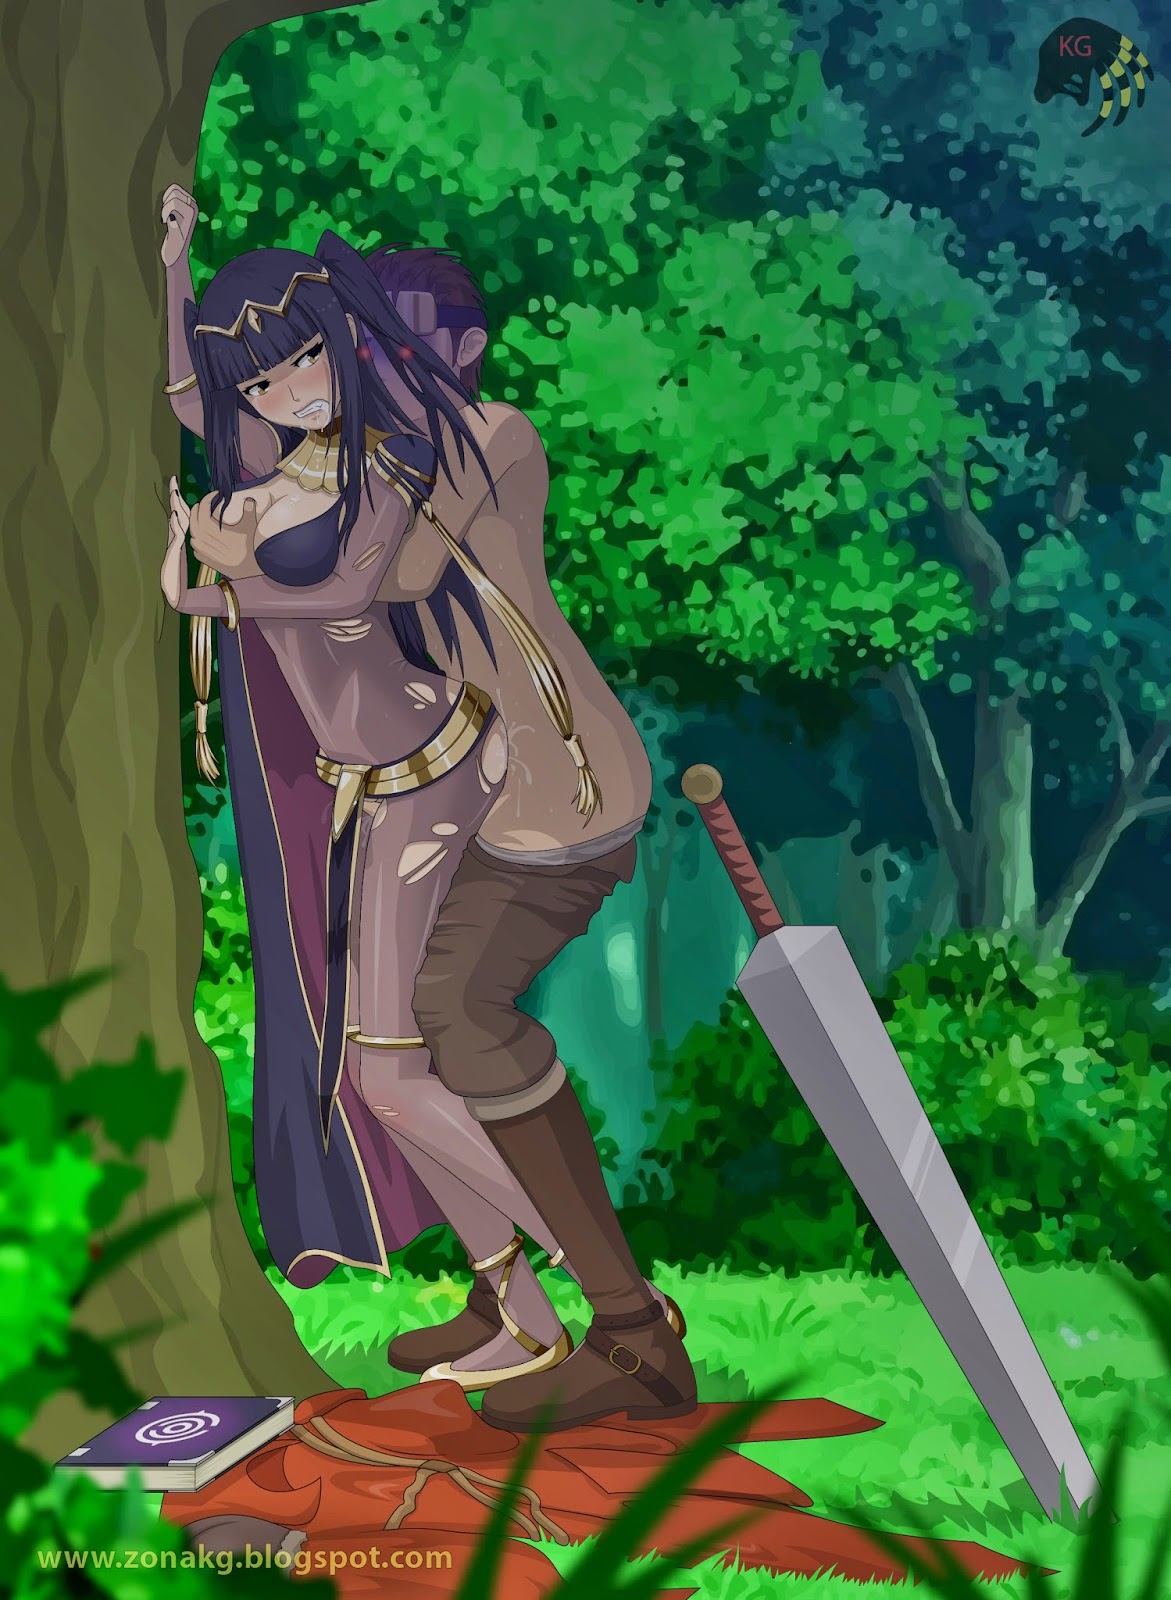 tharja hentai fire emblem standing sex cum in mouth inside resurect anime zonakg